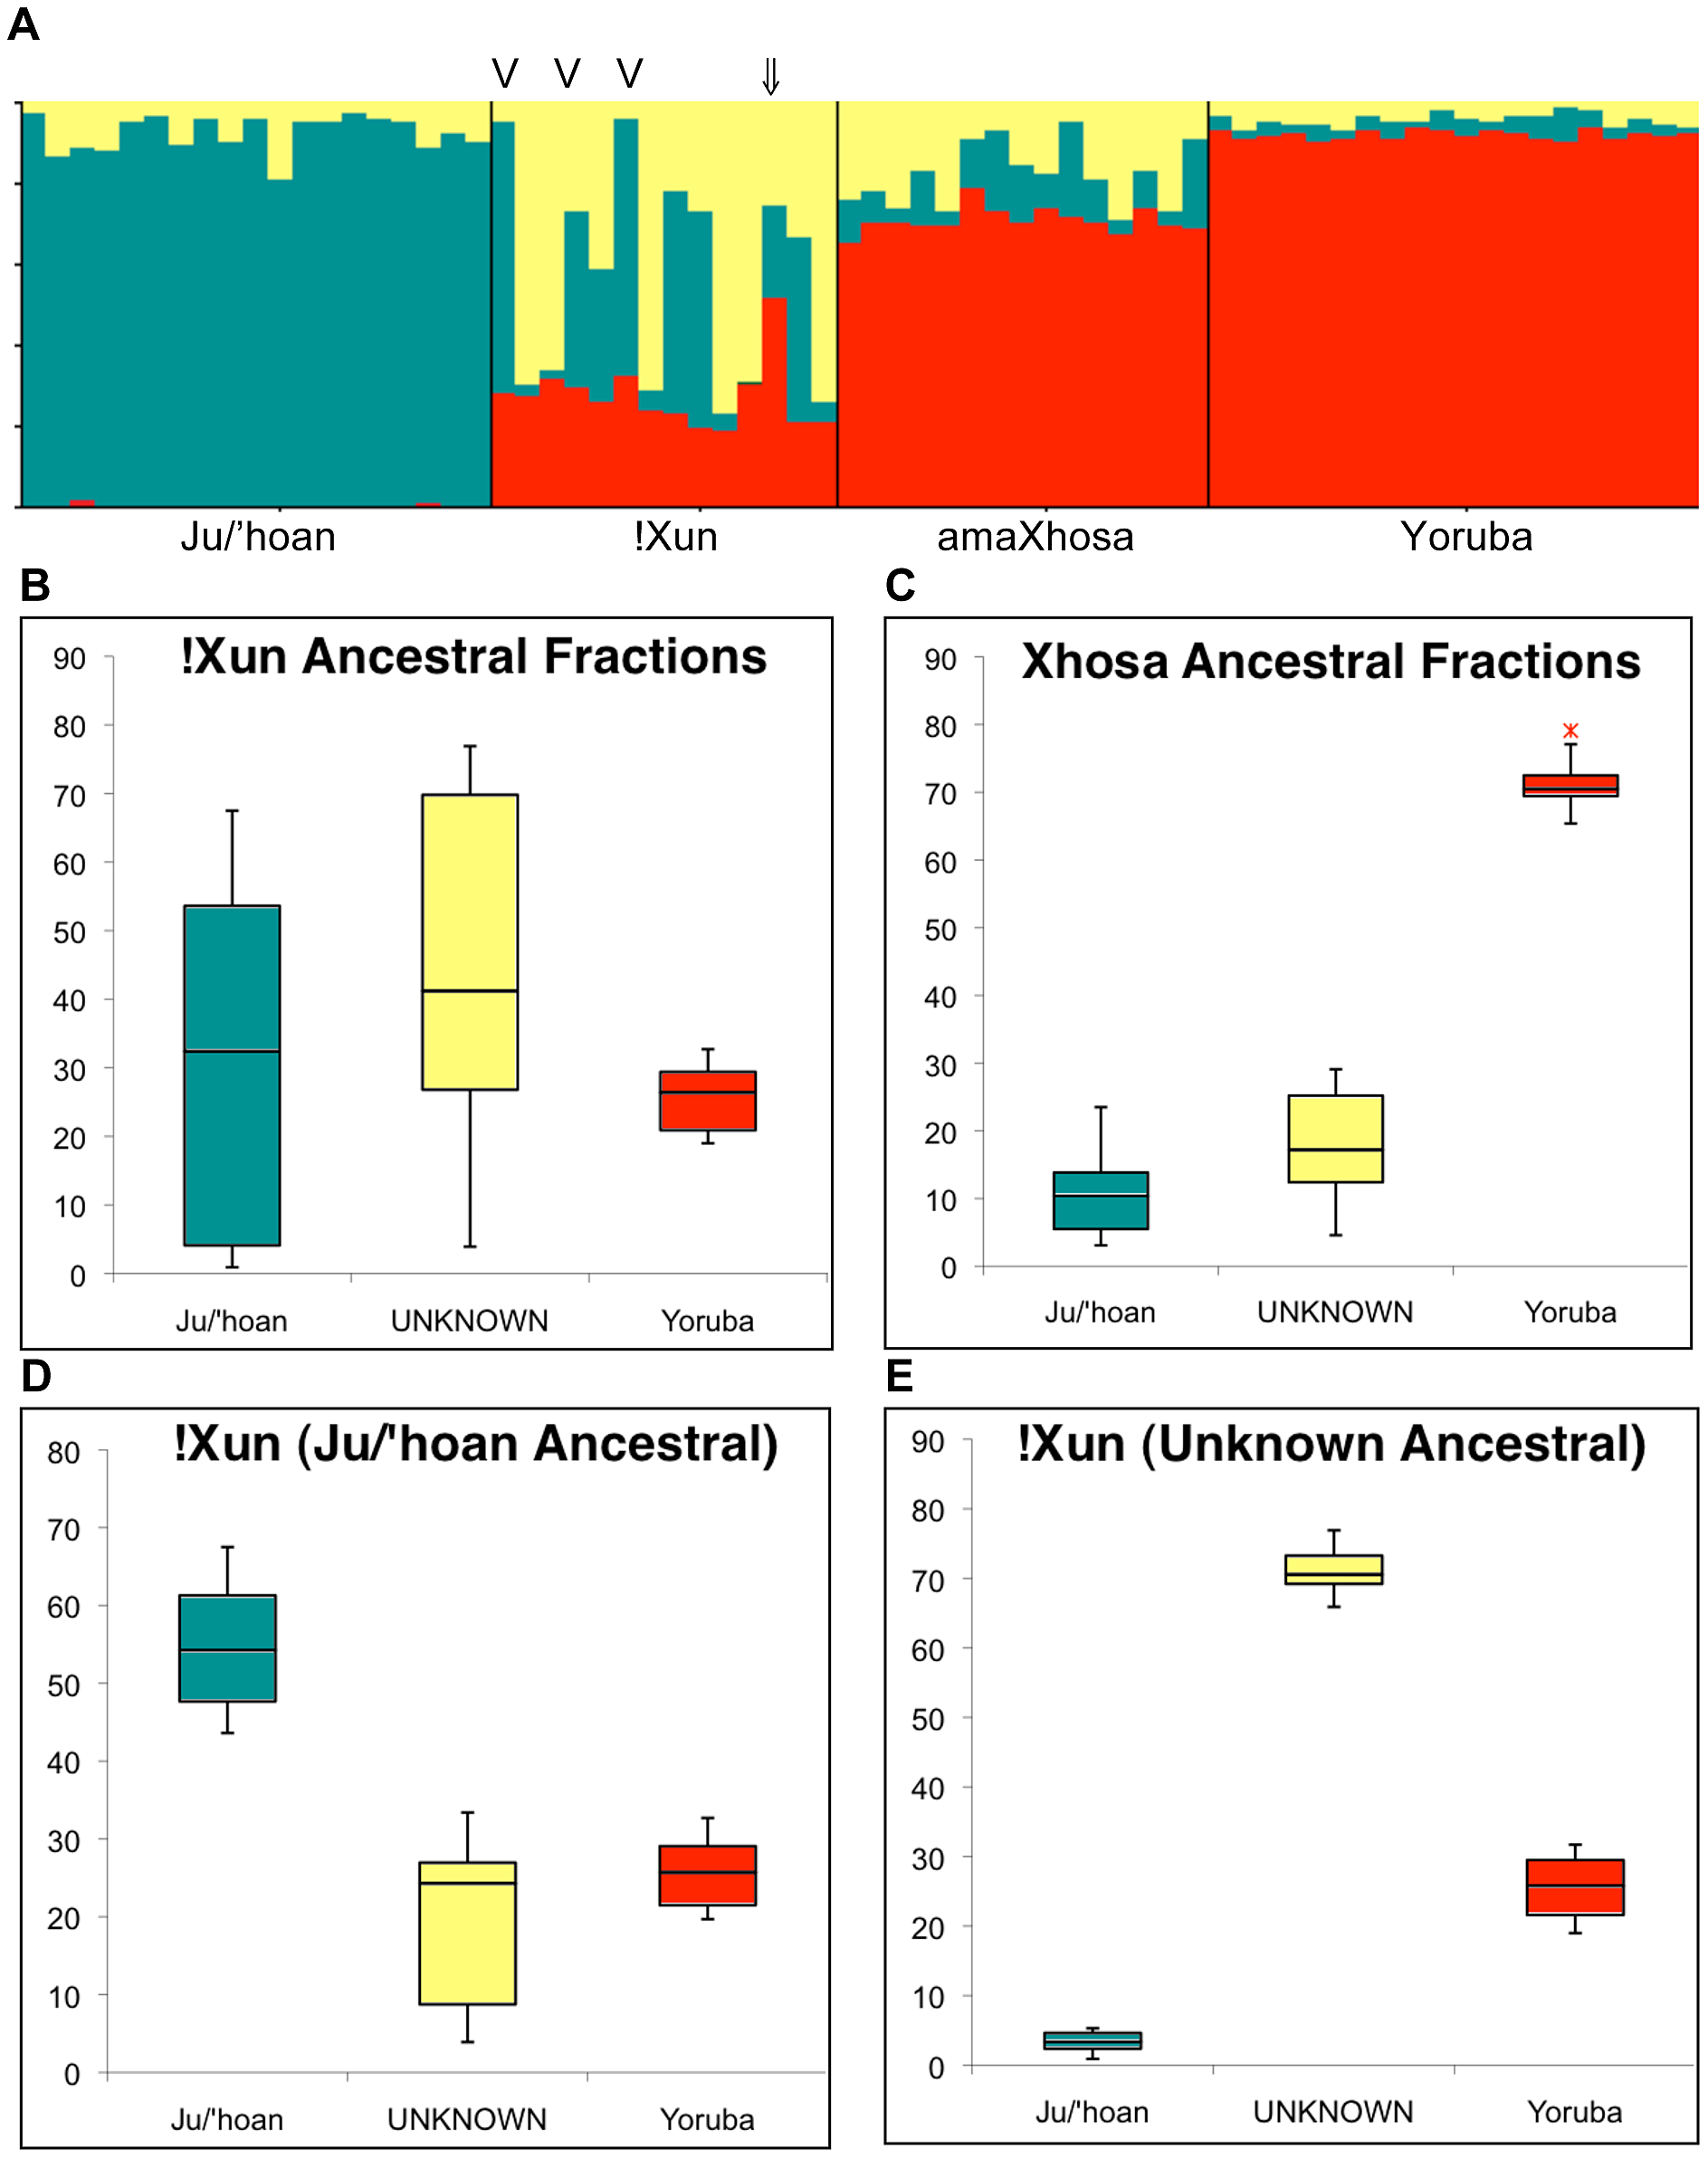 Ju/'hoan-Yoruba ancestry informative markers (AIMs) defined ancestral contributions to the !Xun and amaXhosa, providing evidence for two distinct !Xun lineages with differing ancestral contributions.